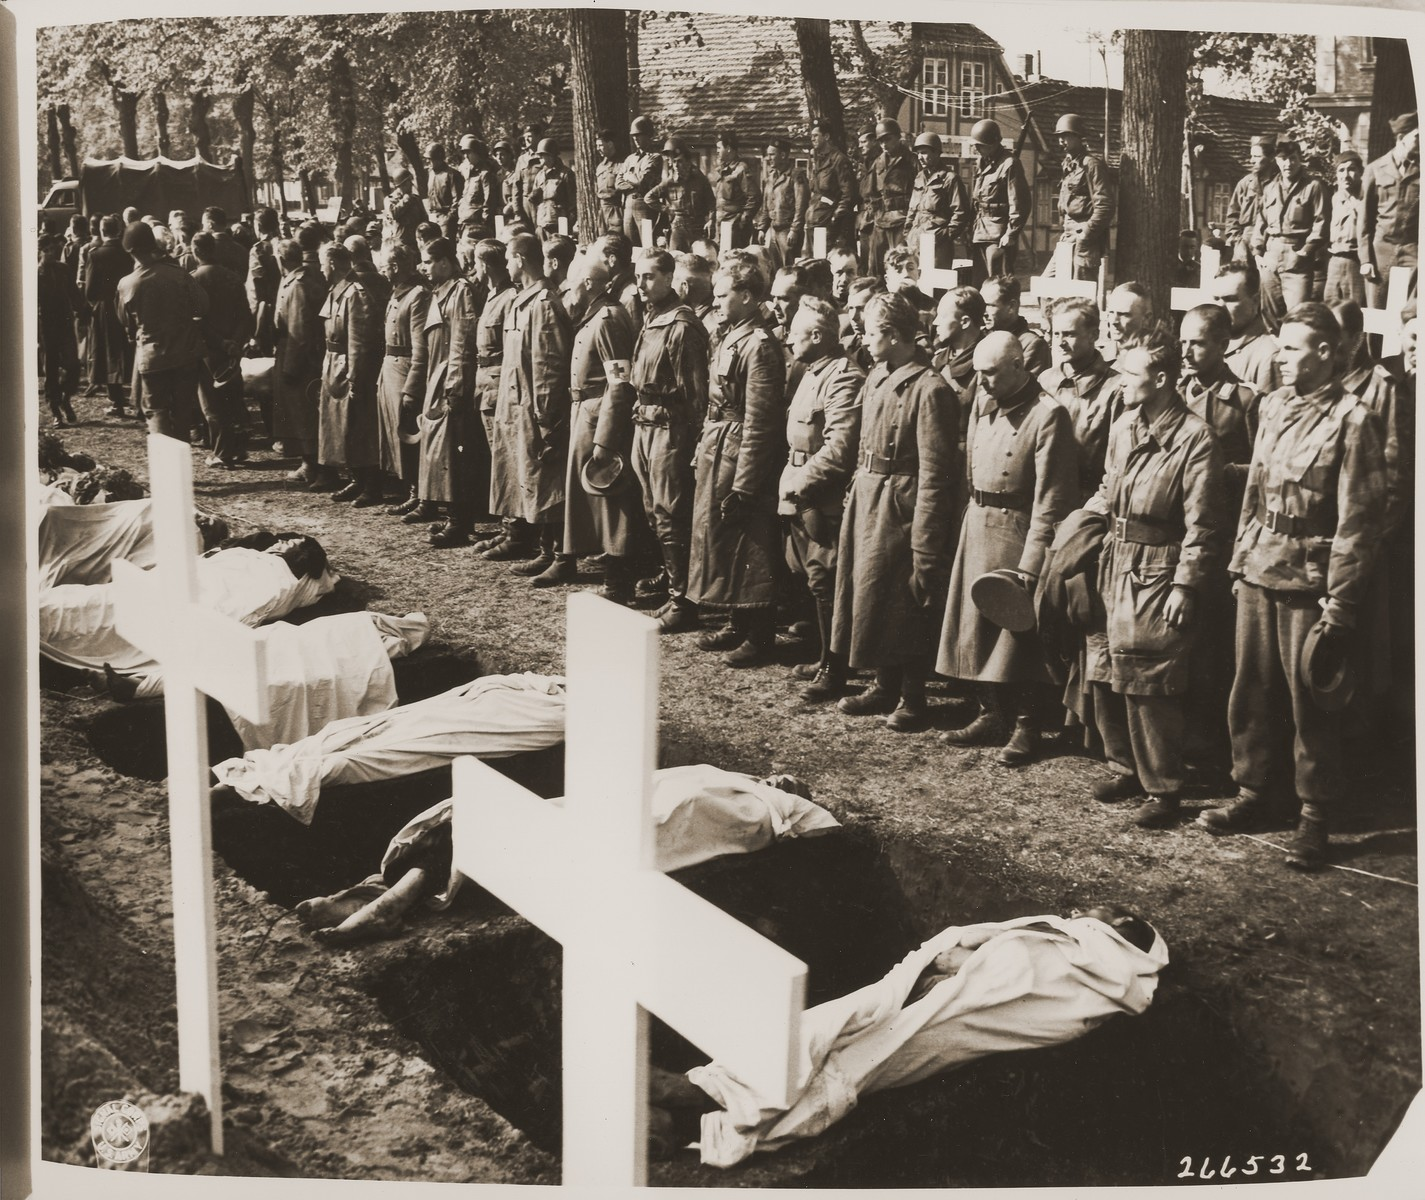 "German soldiers pause for a moment of silence at the mass funeral on the palace grounds of the Archduke of Mecklenburg in Ludwigslust, where the townspeople were forced by U.S. troops to bury the bodies of prisoners killed in the Woebbelin concentration camp.  The original Signal Corps caption (from copy from Ron Leidelmeyer) reads, ""NEW NAZI HORROR CAMP DISCOVERED.  One of the worst Nazi concentration camps uncovered by Allied troops was liberated at Wobbelin, Germany, a small town five miles north of Ludwigslust and 90 miles northwest of Berlin.  Soldiers of three Allied units -- the 82nd U.S. Airborne Division, the Eighth Infantry Division of the Ninth U.S. Army and airborne troops of the Second British Army -- entered the camp and found sick, starving inmates barely surviving under indescribable conditions of filth and squalor.  They found hundreds of dead prisoners in one of the buildings while outside, in a yard, hundreds more  were found hastily buried in huge pits.  One mass grave contained 300 emaciated, disfigured corpses.  The dead included Poles, Russians, Frenchmen, Belgians, Dutchmen and Germans, all of whom had been working as slave laborers for the Nazis.  It is estimated that at least 150 of the original 4,000 prisoners succumbed daily, mostly from starvation and savage treatment at the hands of Nazi SS troops who operated the camp.   Some of the bodies found were burned almost beyond recognition and systematic torture of the inmates was revealed by the  physical condition of most of the survivors.  Military Government officers immediately ordered leading citizens of nearby Ludwigslust and other towns to march through the camp and witness the atrocities committed by representatives of the German Government.  Most of the civilians disclaimed any knowledge of the camp's existence despite the fact that many of the prisoners worked in the area.  The local residents later were made to exhume the bodies from the mass graves at the camp and provide decent, respectable interment of all dead prisoners.  Two hundred were buried in the public square of Ludwigslust May 7, 1945, and an equal number were buried in the garden of the highest Nazi official of Hagenow.  Eighty more were laid to rest in the town of Schwerin.  BIPPA                                                          EA 66633  THIS PHOTO SHOWS:  German soldiers stand bareheaded at the graves of these victims of German cruelty.  In the background, soldiers of the 82nd U.S. Airborne Division witness the burial proceedings at Ludwigslust.  U.S. Signal Corps Photo ETO-HQ-45-46088.   SERVICED BY LONDON OWI TO LIST B CERTIFIED AS PASSED  BY SHAEF CENSOR"